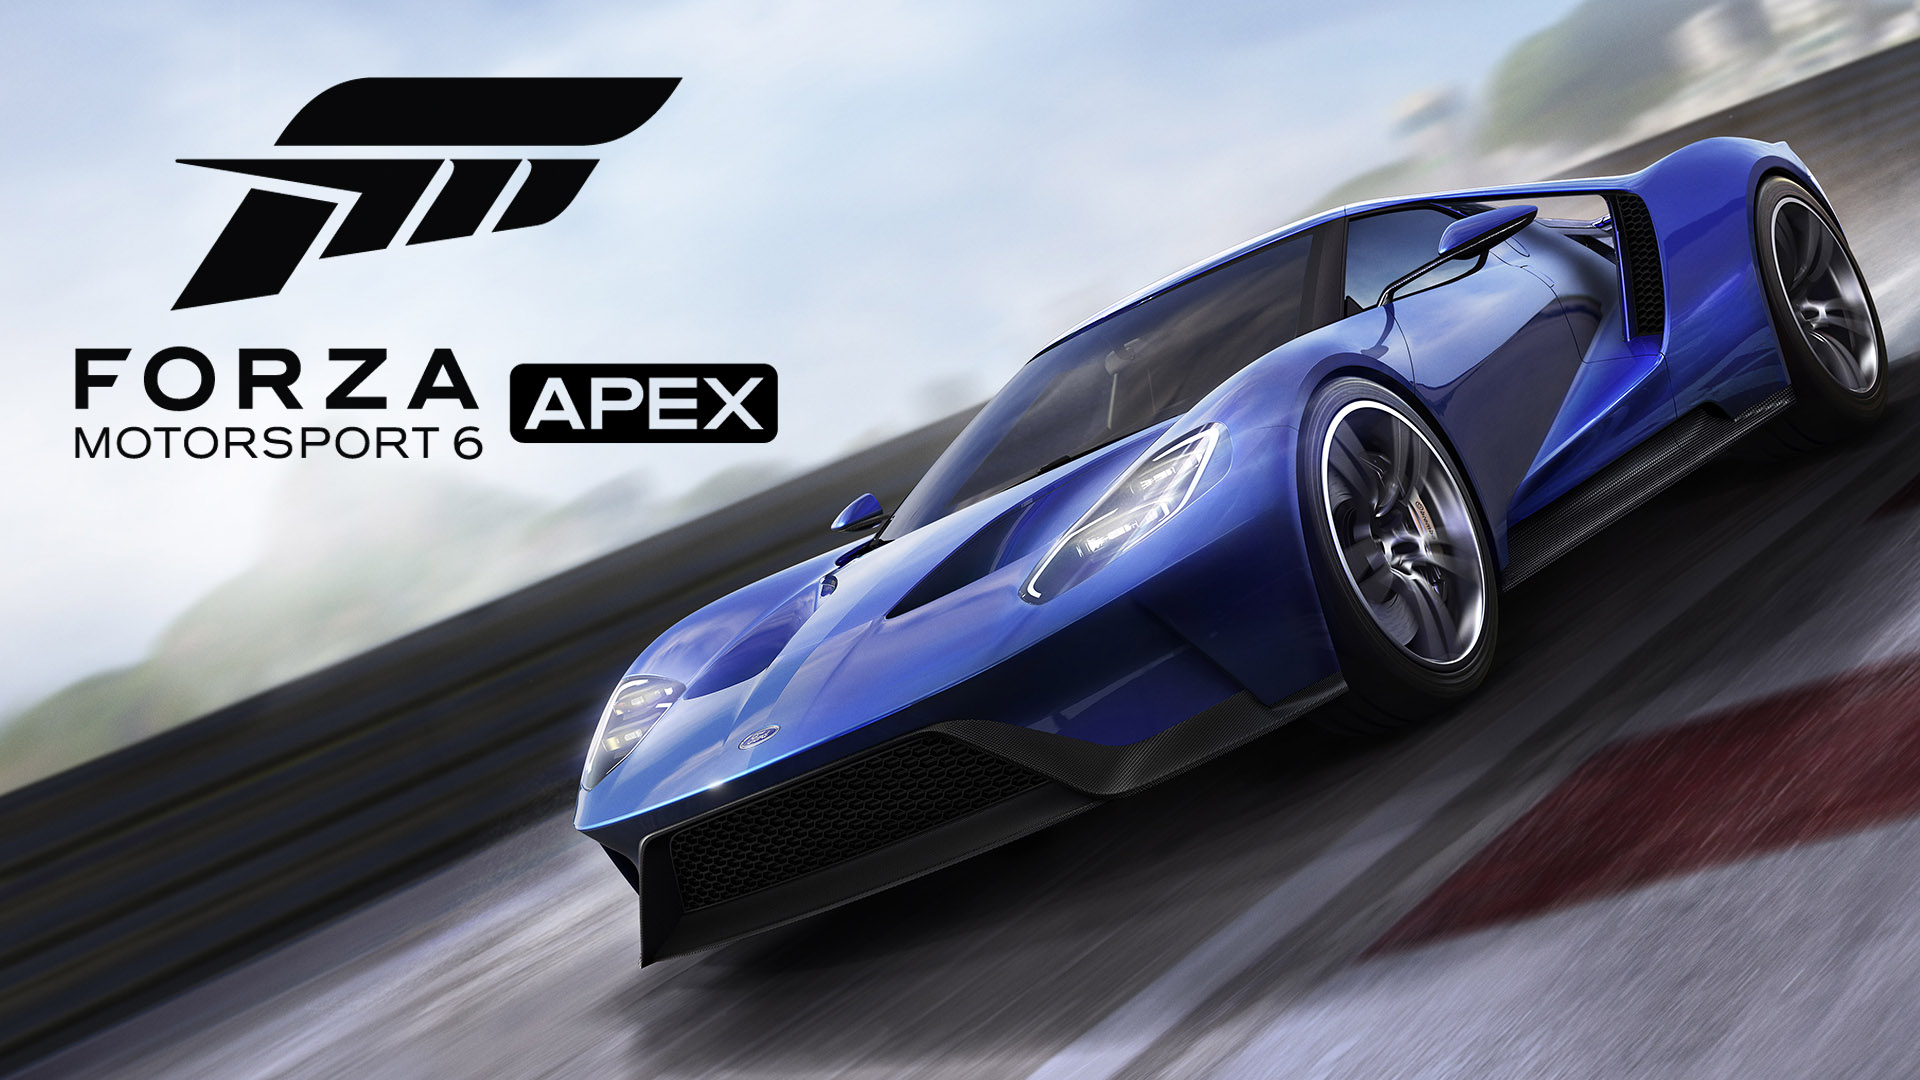 Forza Motorsport 6: Apex Will release on May 5th